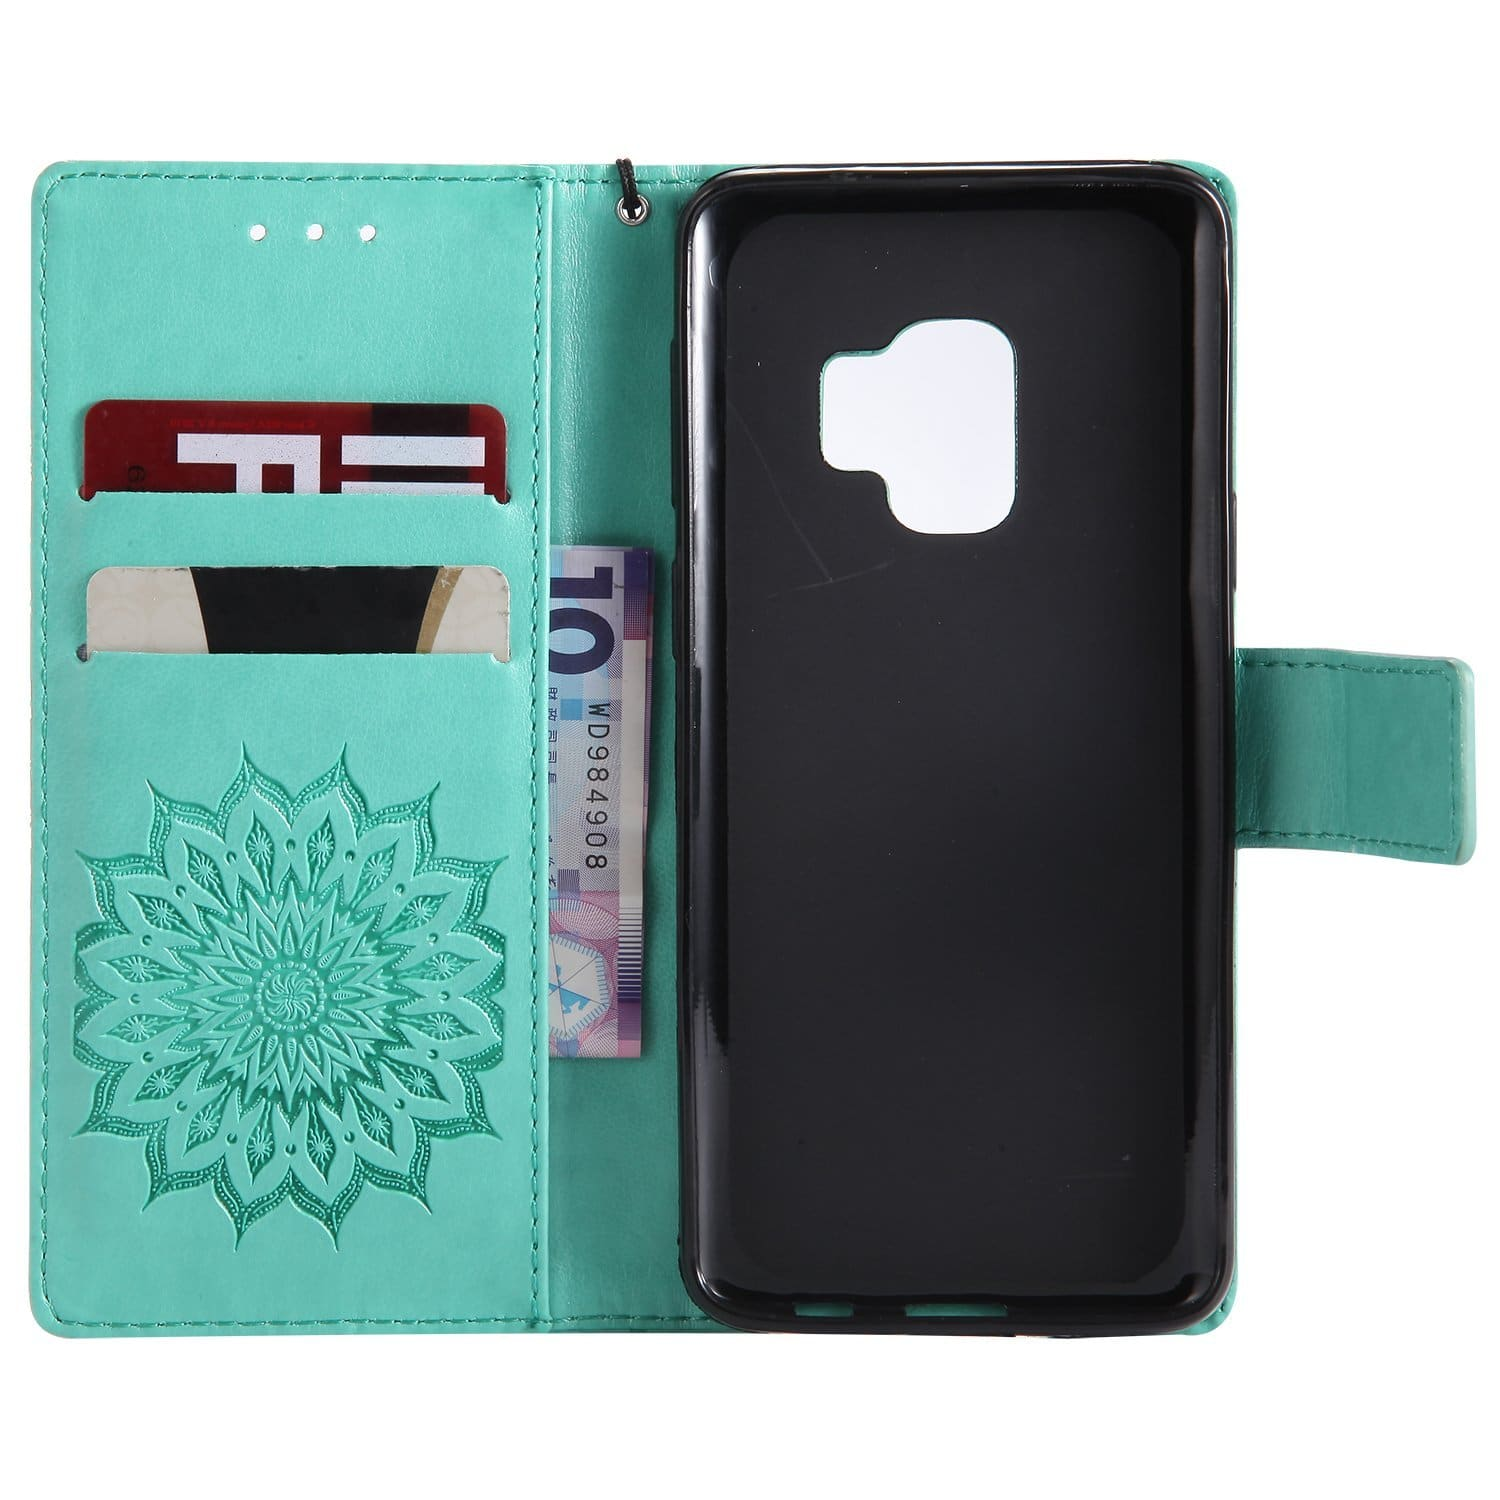 Galaxy S9 Wallet Case, SMYTU Premium Emboss Sunflower Flip Wallet PU Leather Magnetic Cover with Wrist Strap (Green) $4.39